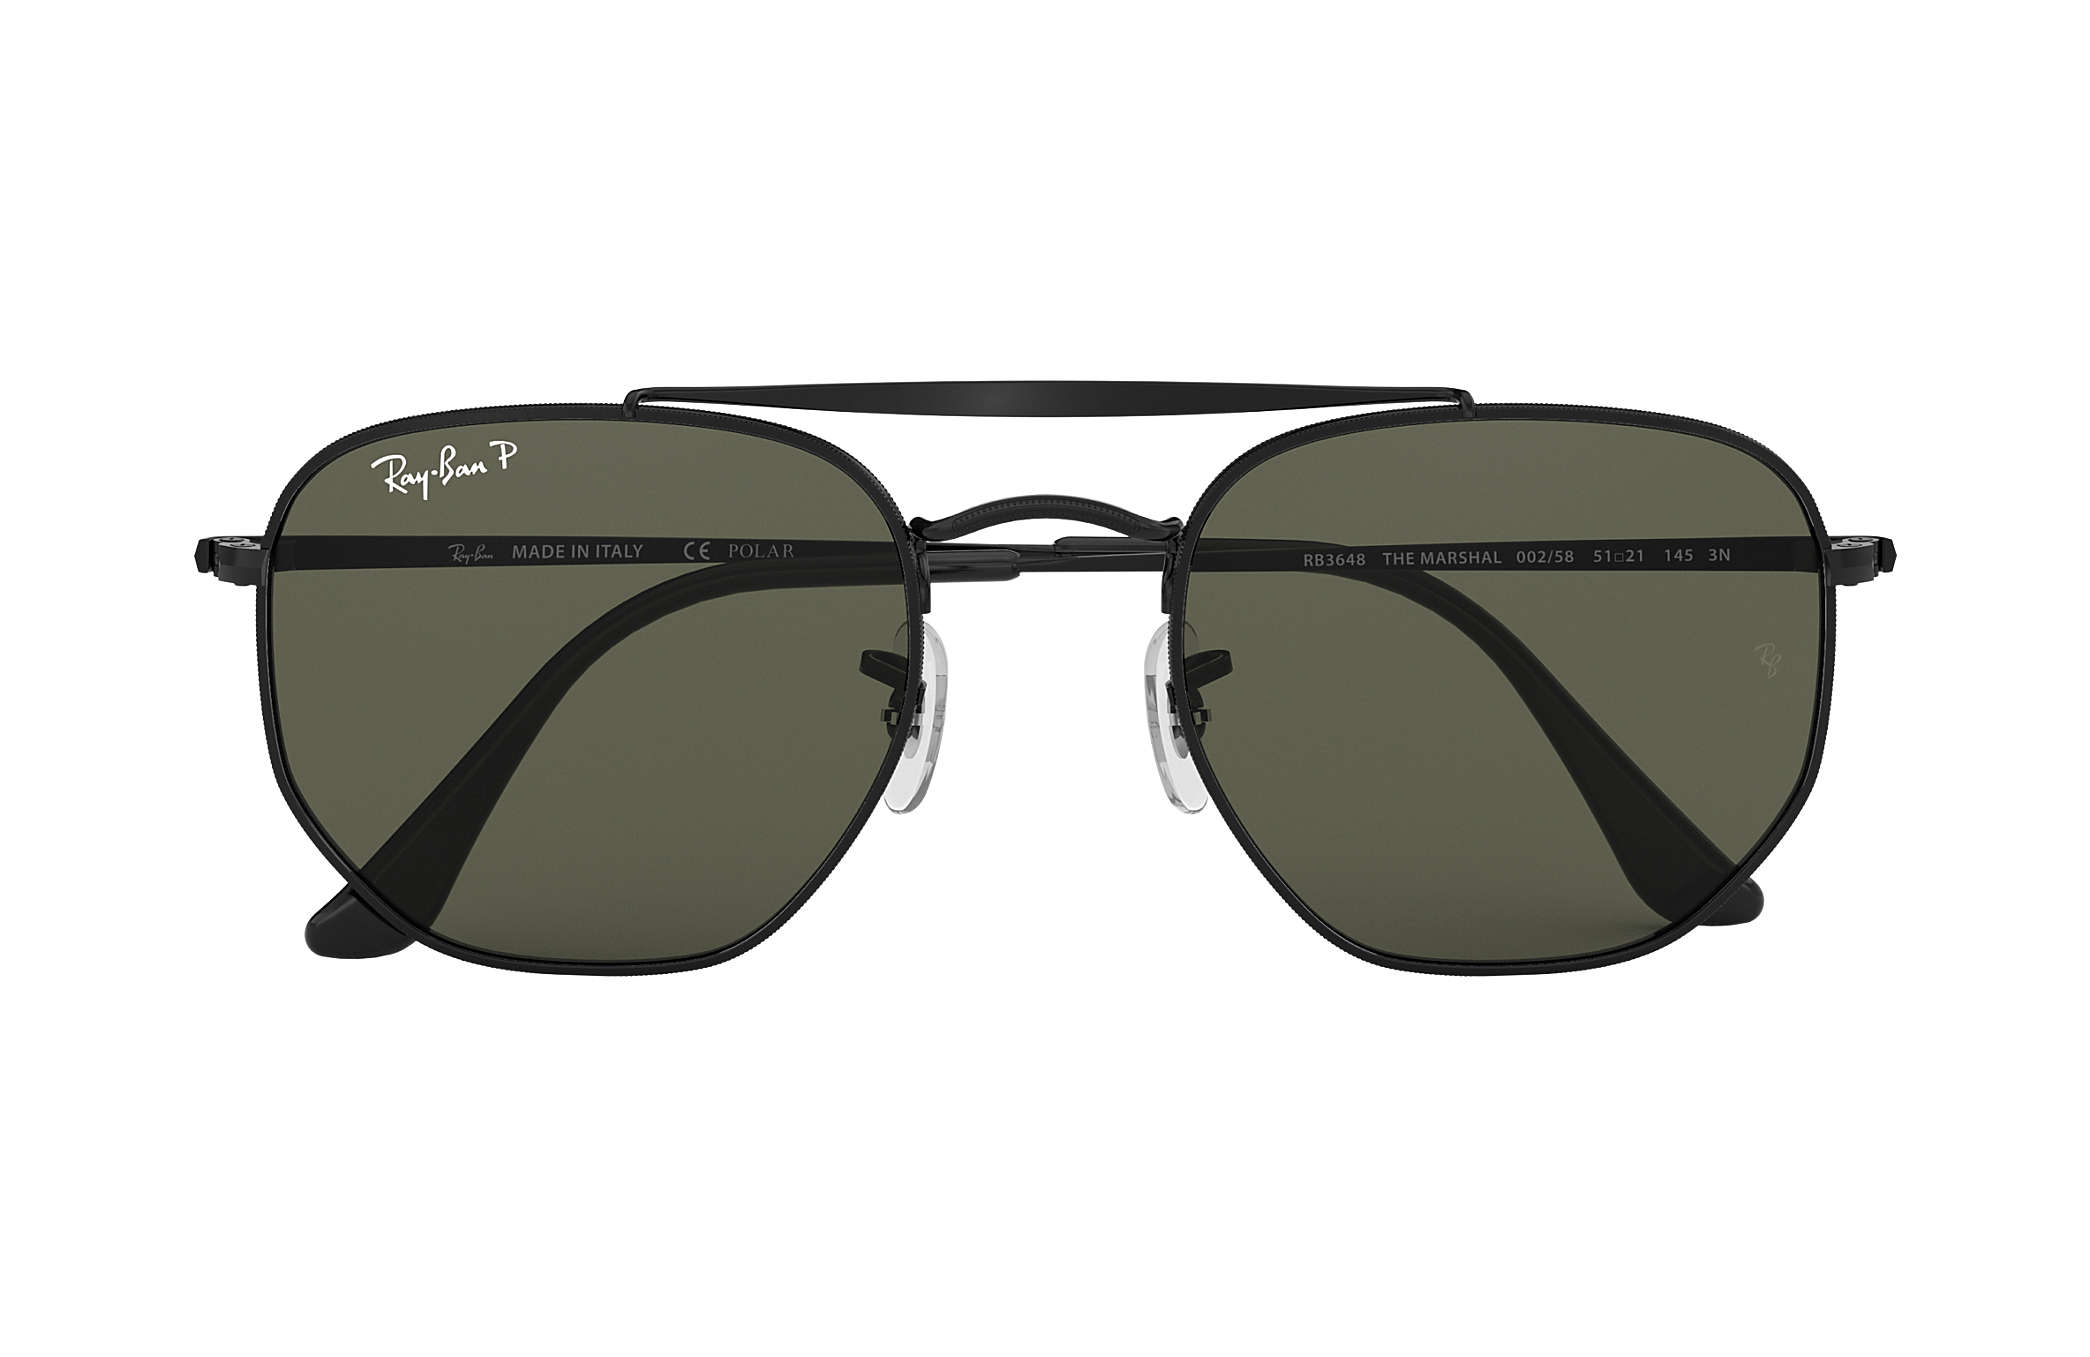 08207b9b18b Ray-Ban Marshal RB3648 Black - Metal - Green Polarized Lenses ...